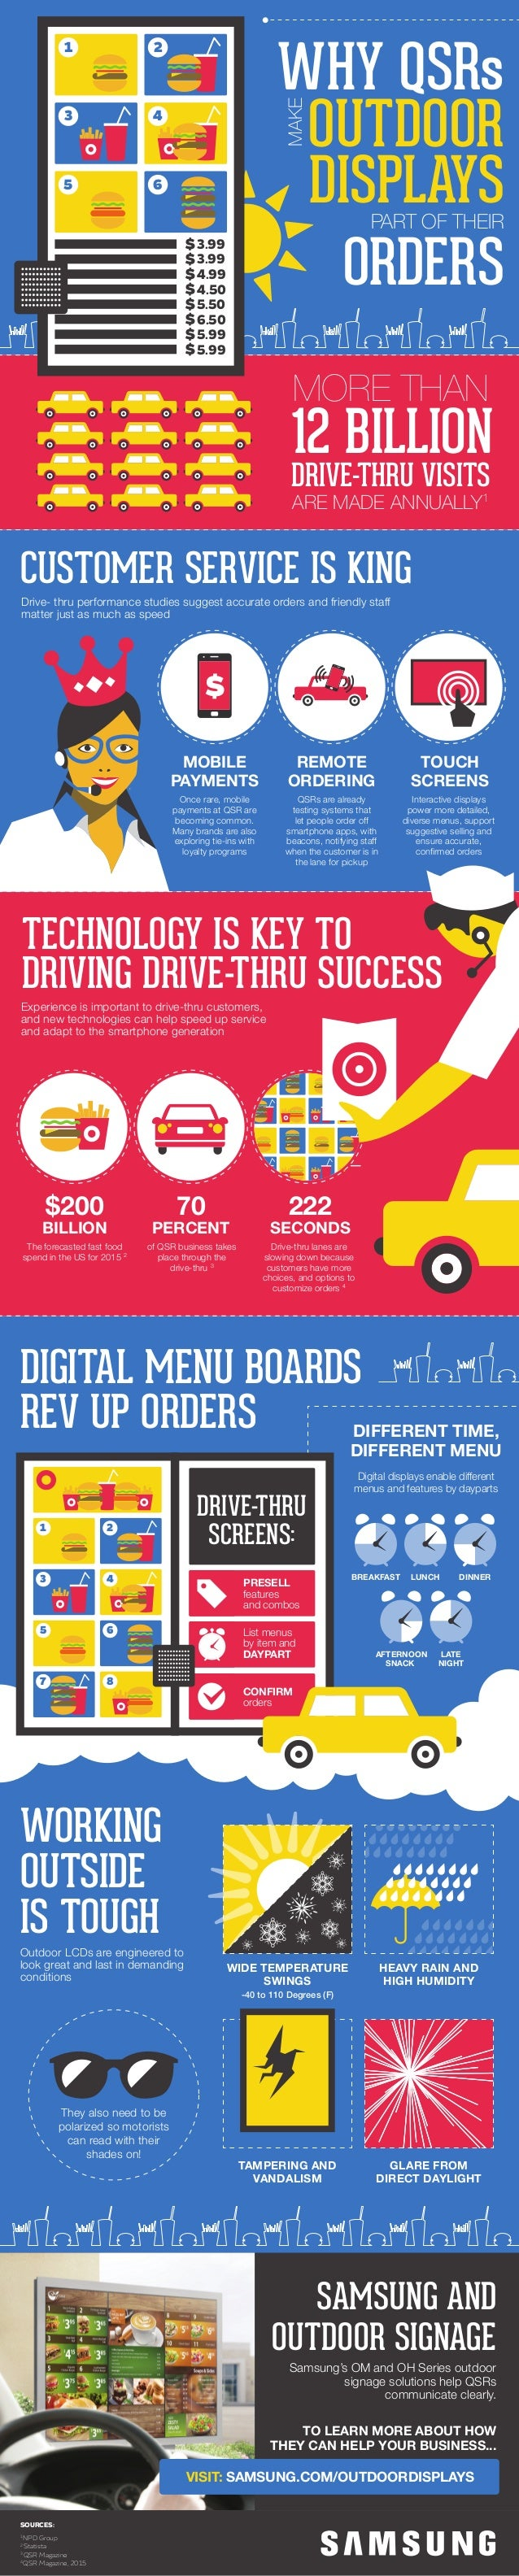 1 2 3 4 5 6 7 8 DRIVE-THRU SCREENS: PRESELL features and combos List menus by item and DAYPART CONFIRM orders WHY QSRs OUT...